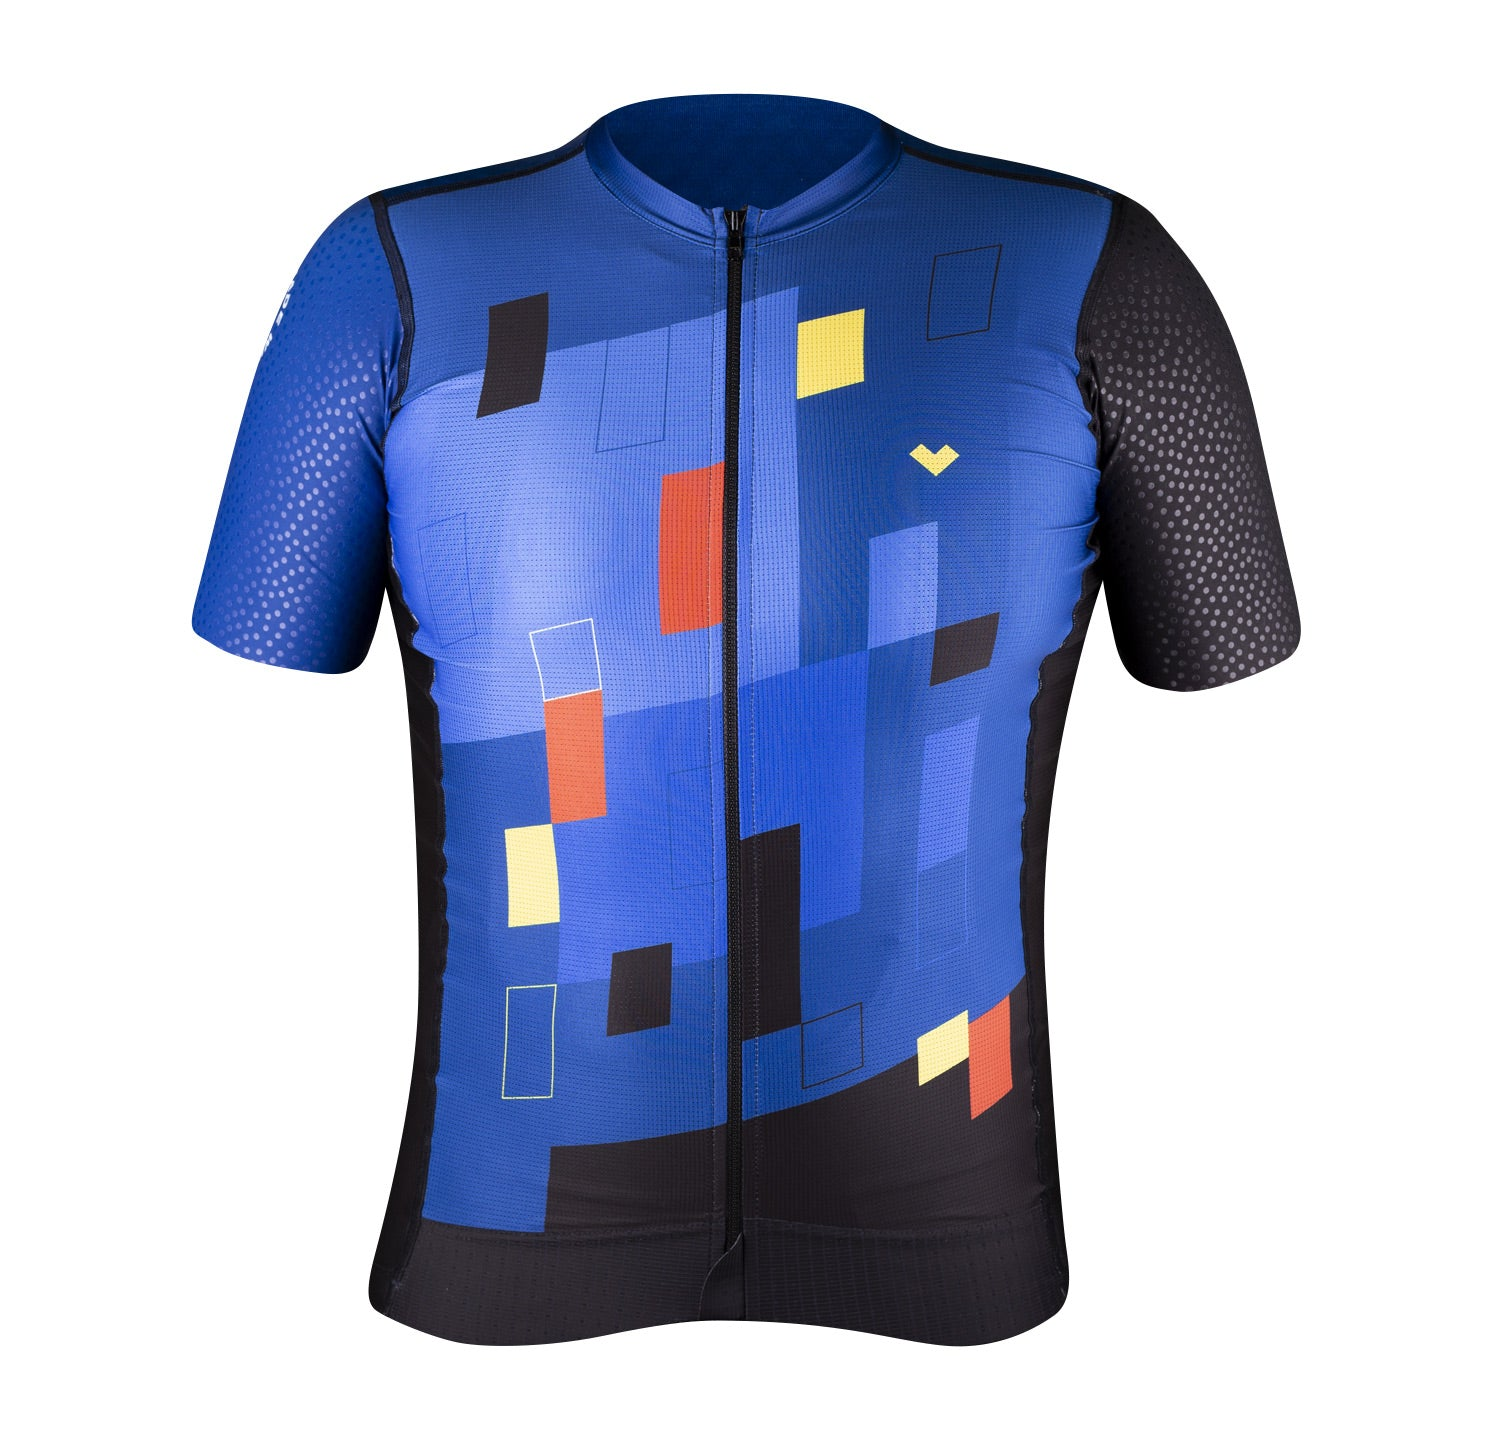 JML Shapes 2.0 Jersey - Jerseys Made with Love